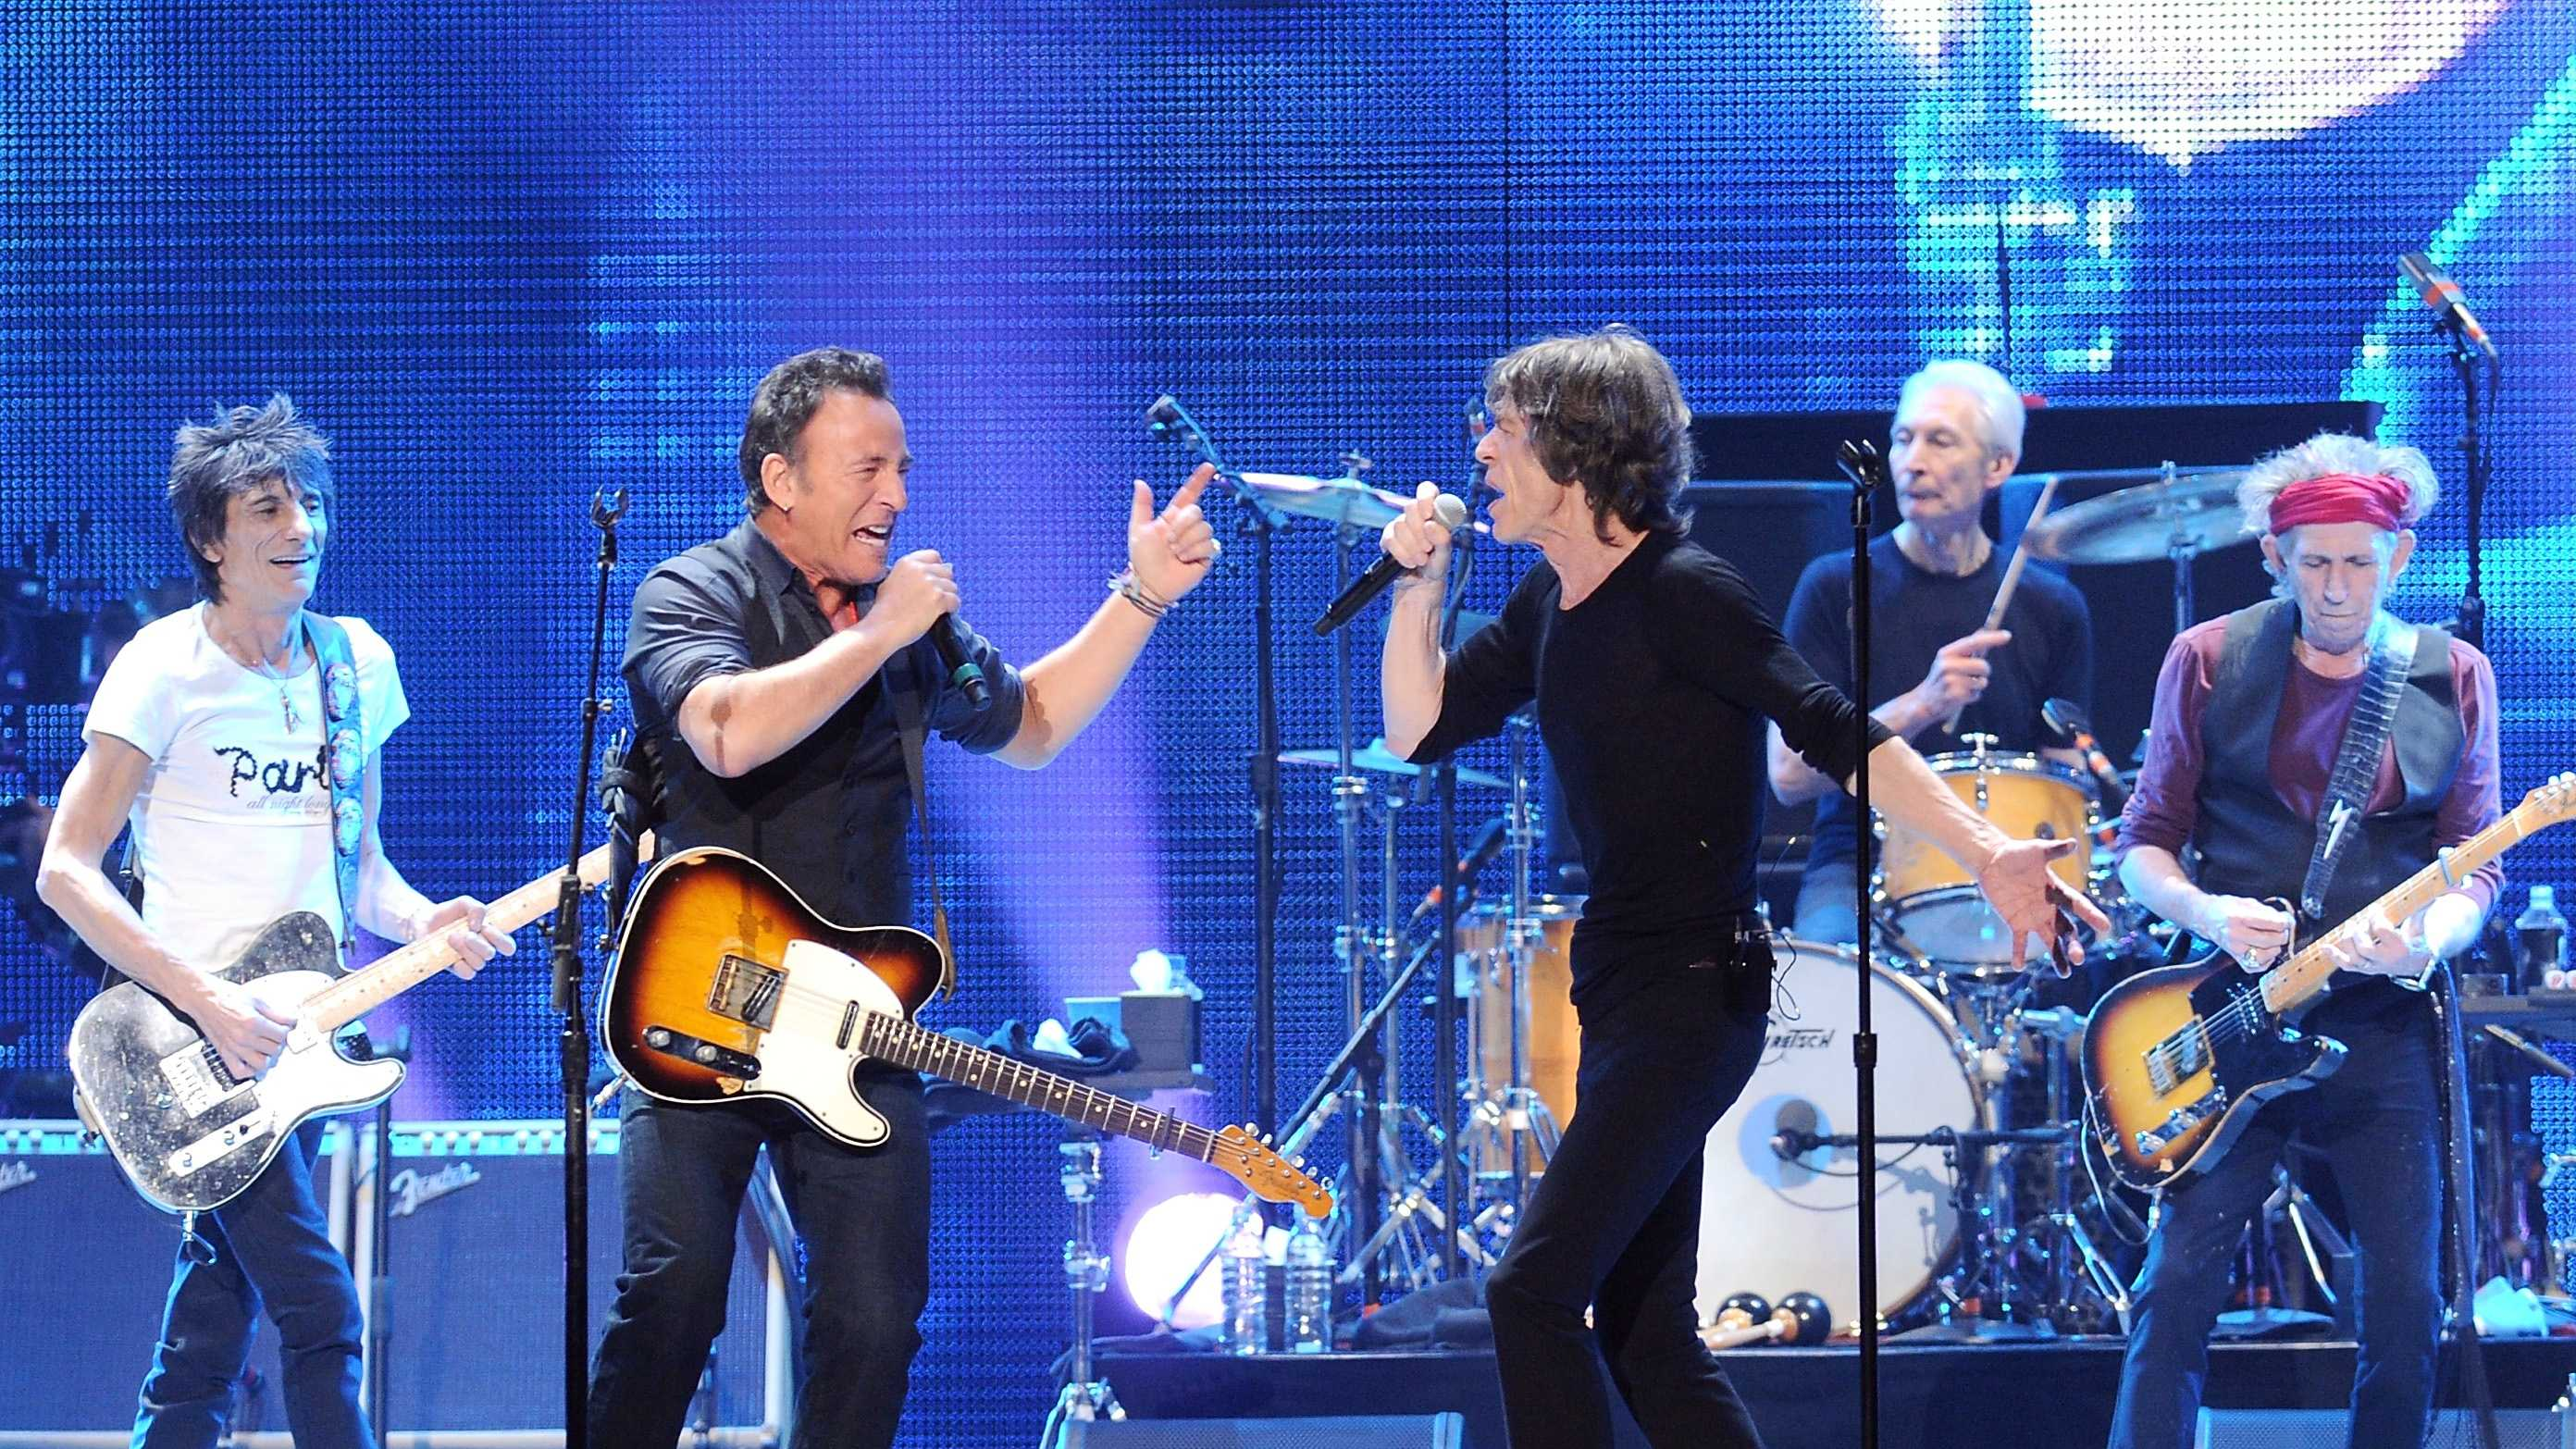 Bruce Springsteen, center left, performs with, from left, Ronnie Wood, Mick Jagger, Charlie Watts and Keith Richards of The Rolling Stones at the Prudential Center in Newark, NJ on Saturday, Dec. 15, 2012.